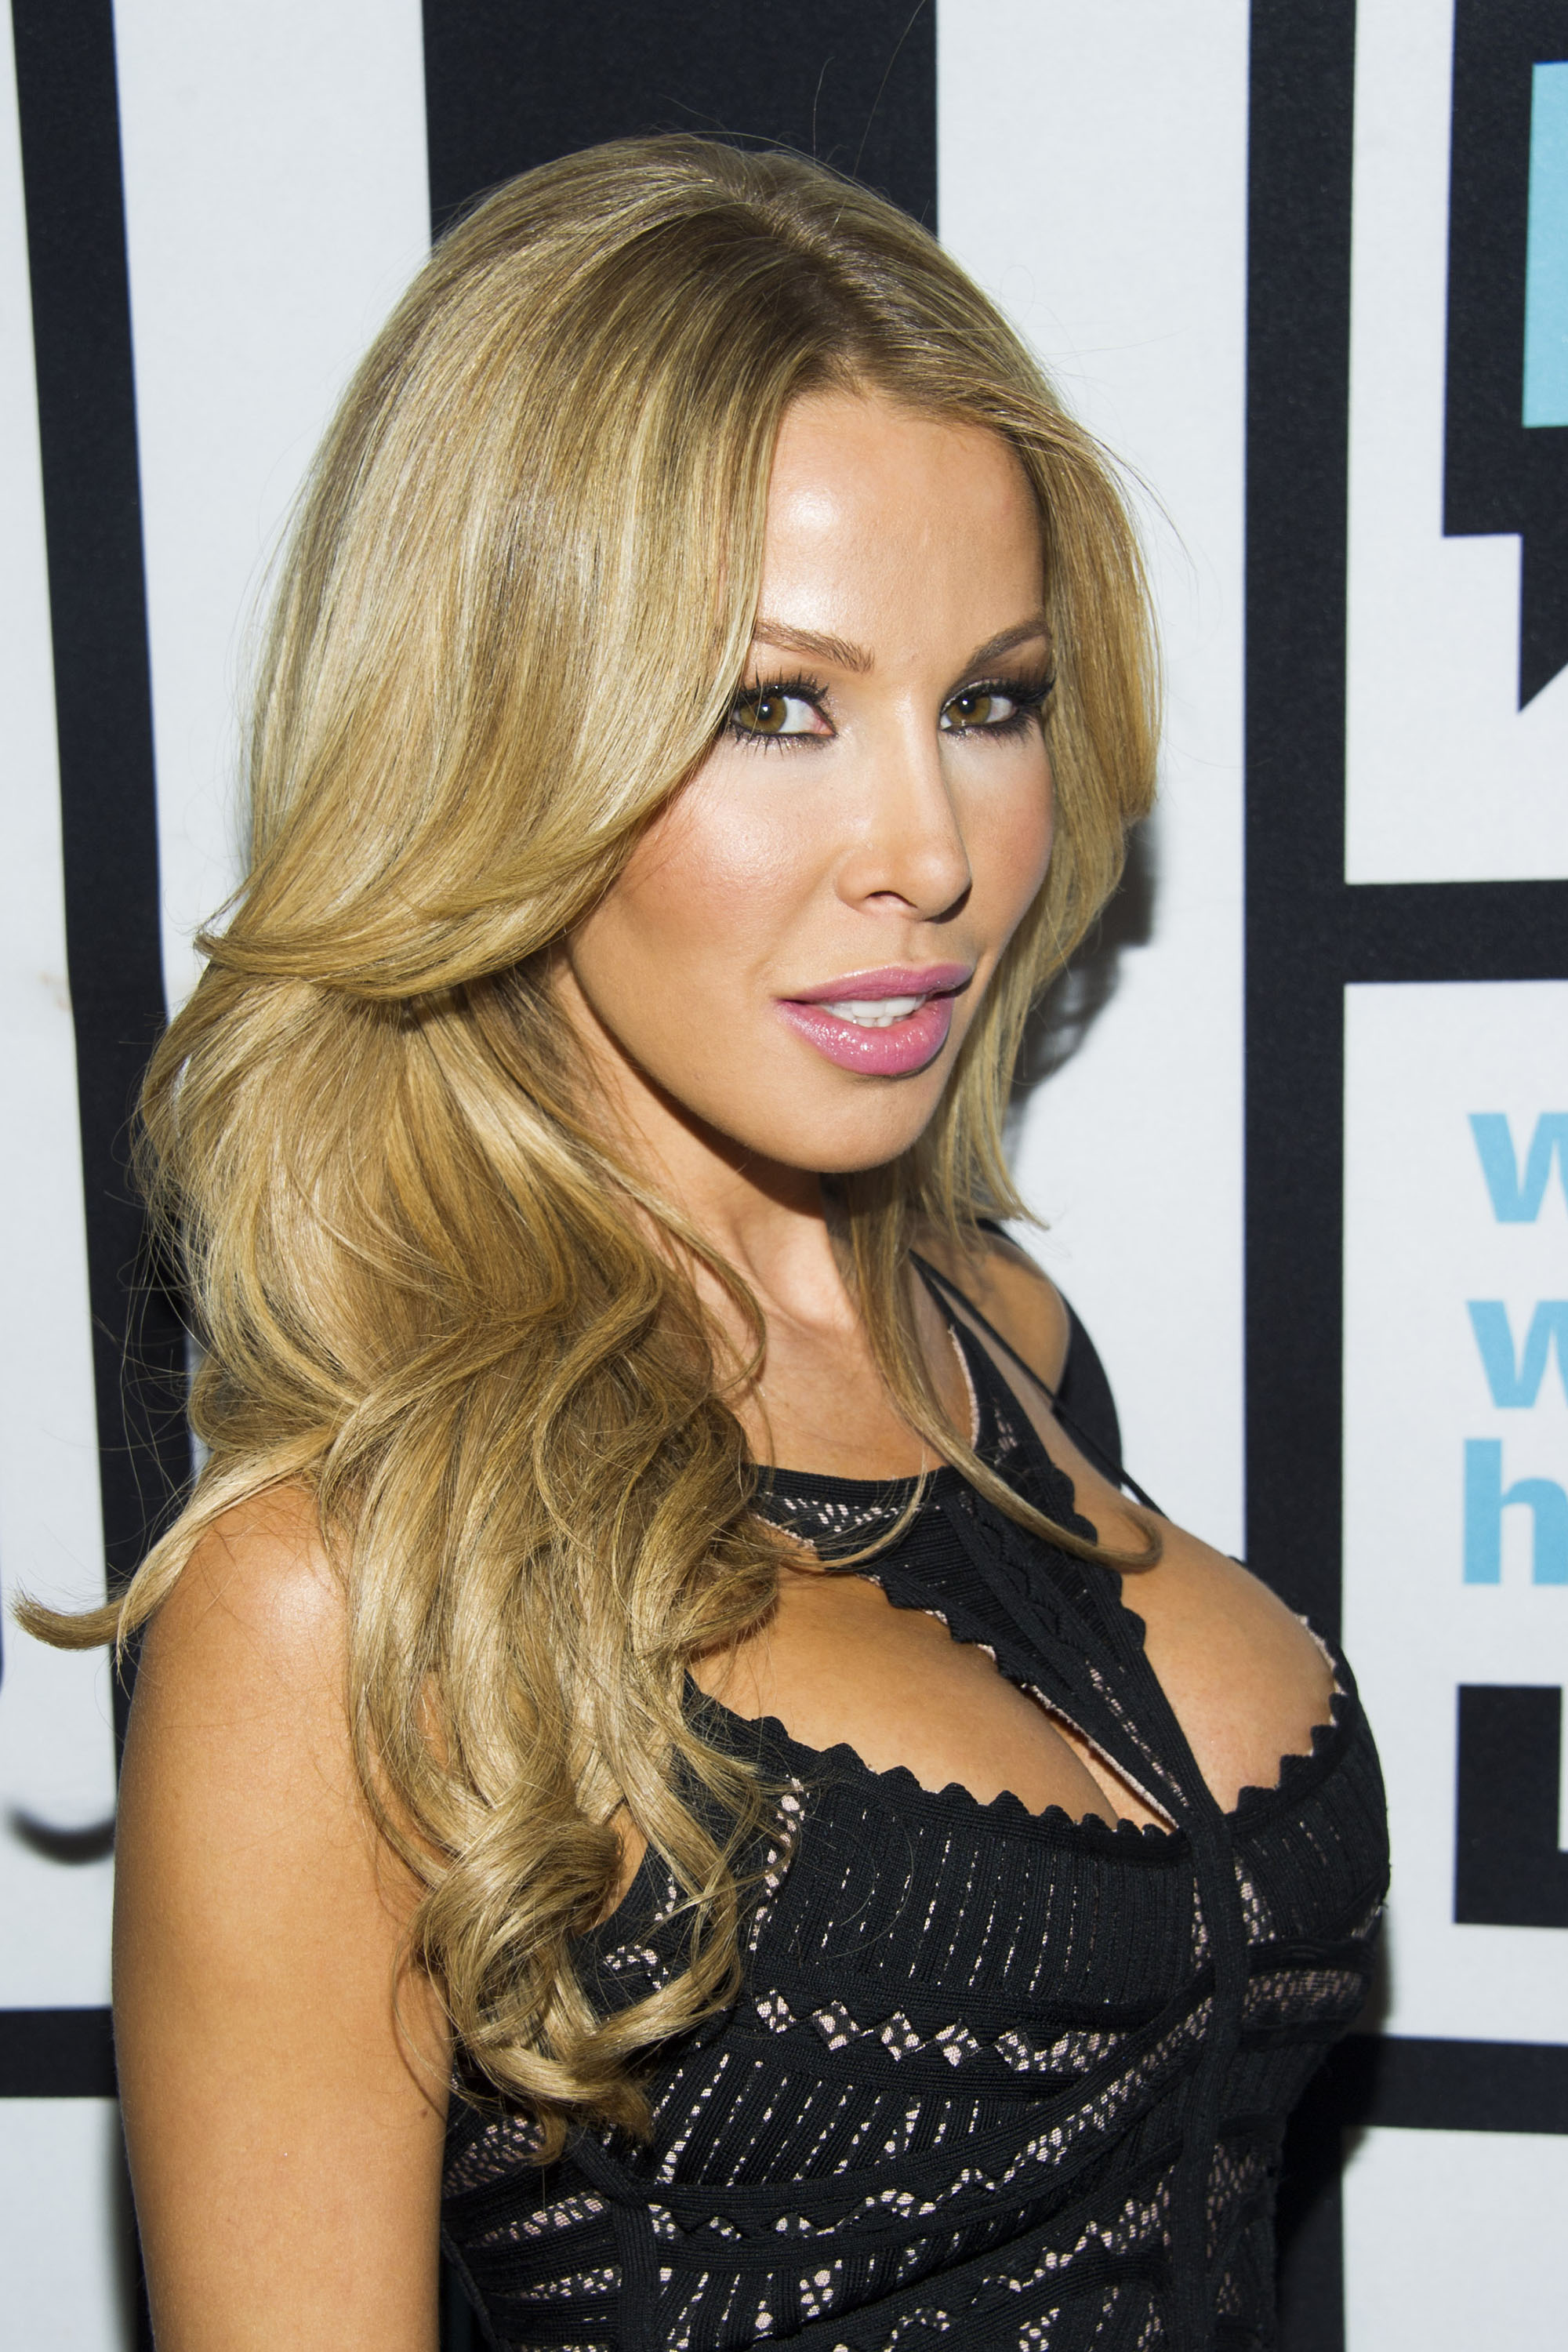 Lisa Hochstein nude (61 photo), pictures Pussy, Twitter, swimsuit 2018